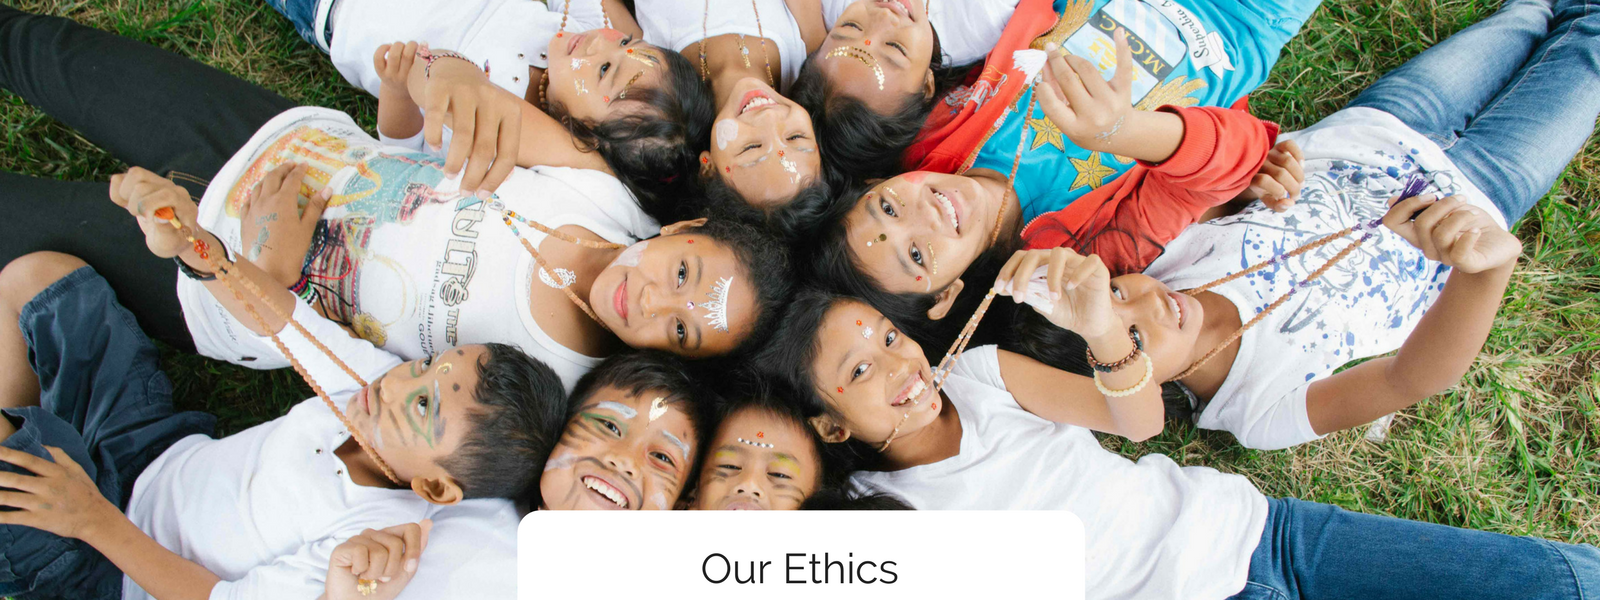 Our Ethics - Bali Malas